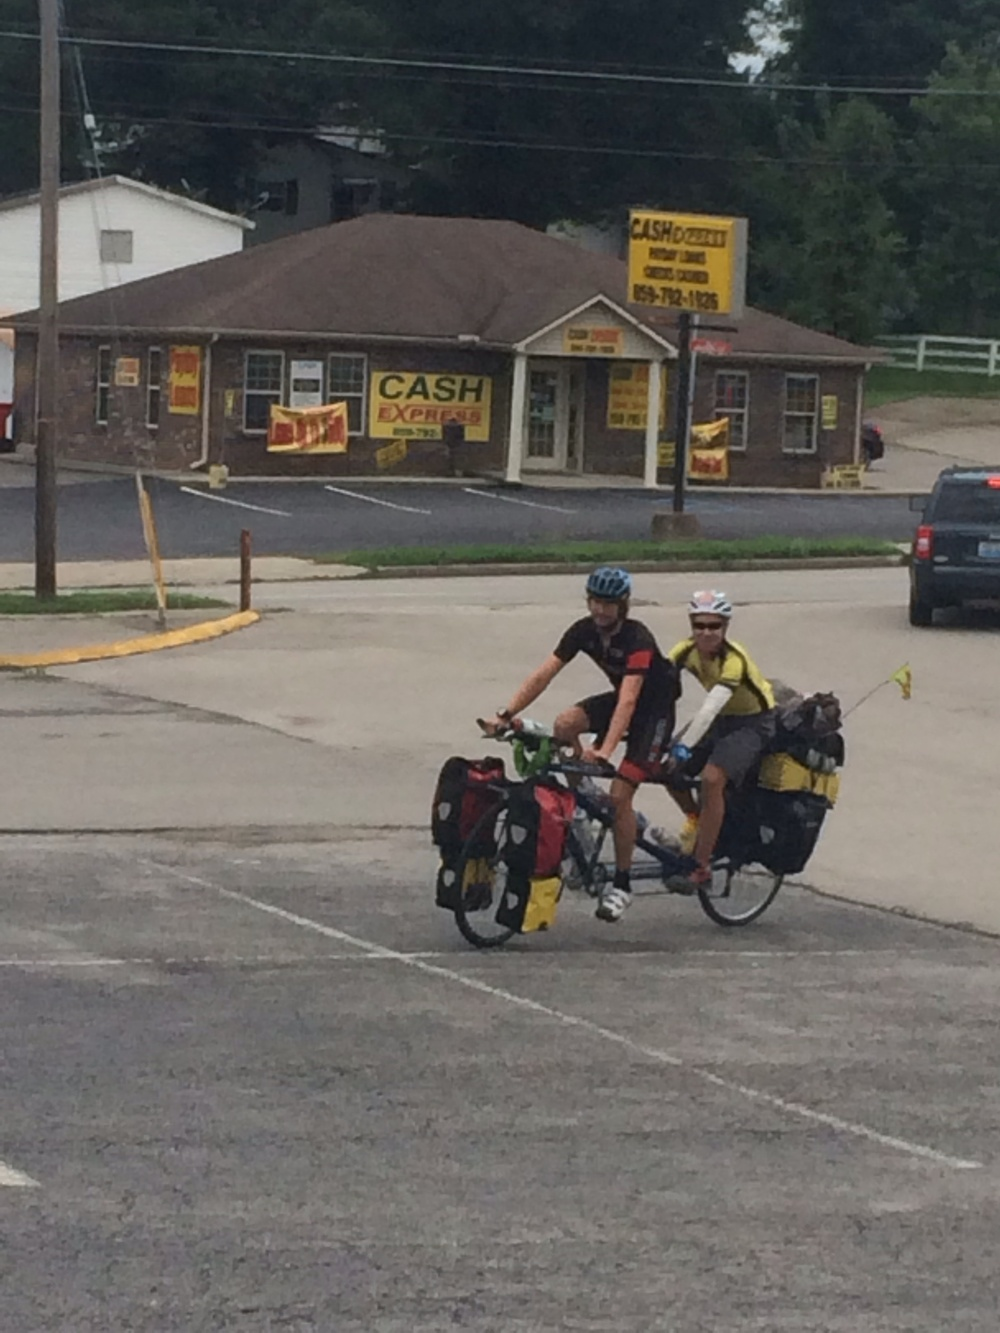 Brian takes a parking lot spin on the tandem with Benja.